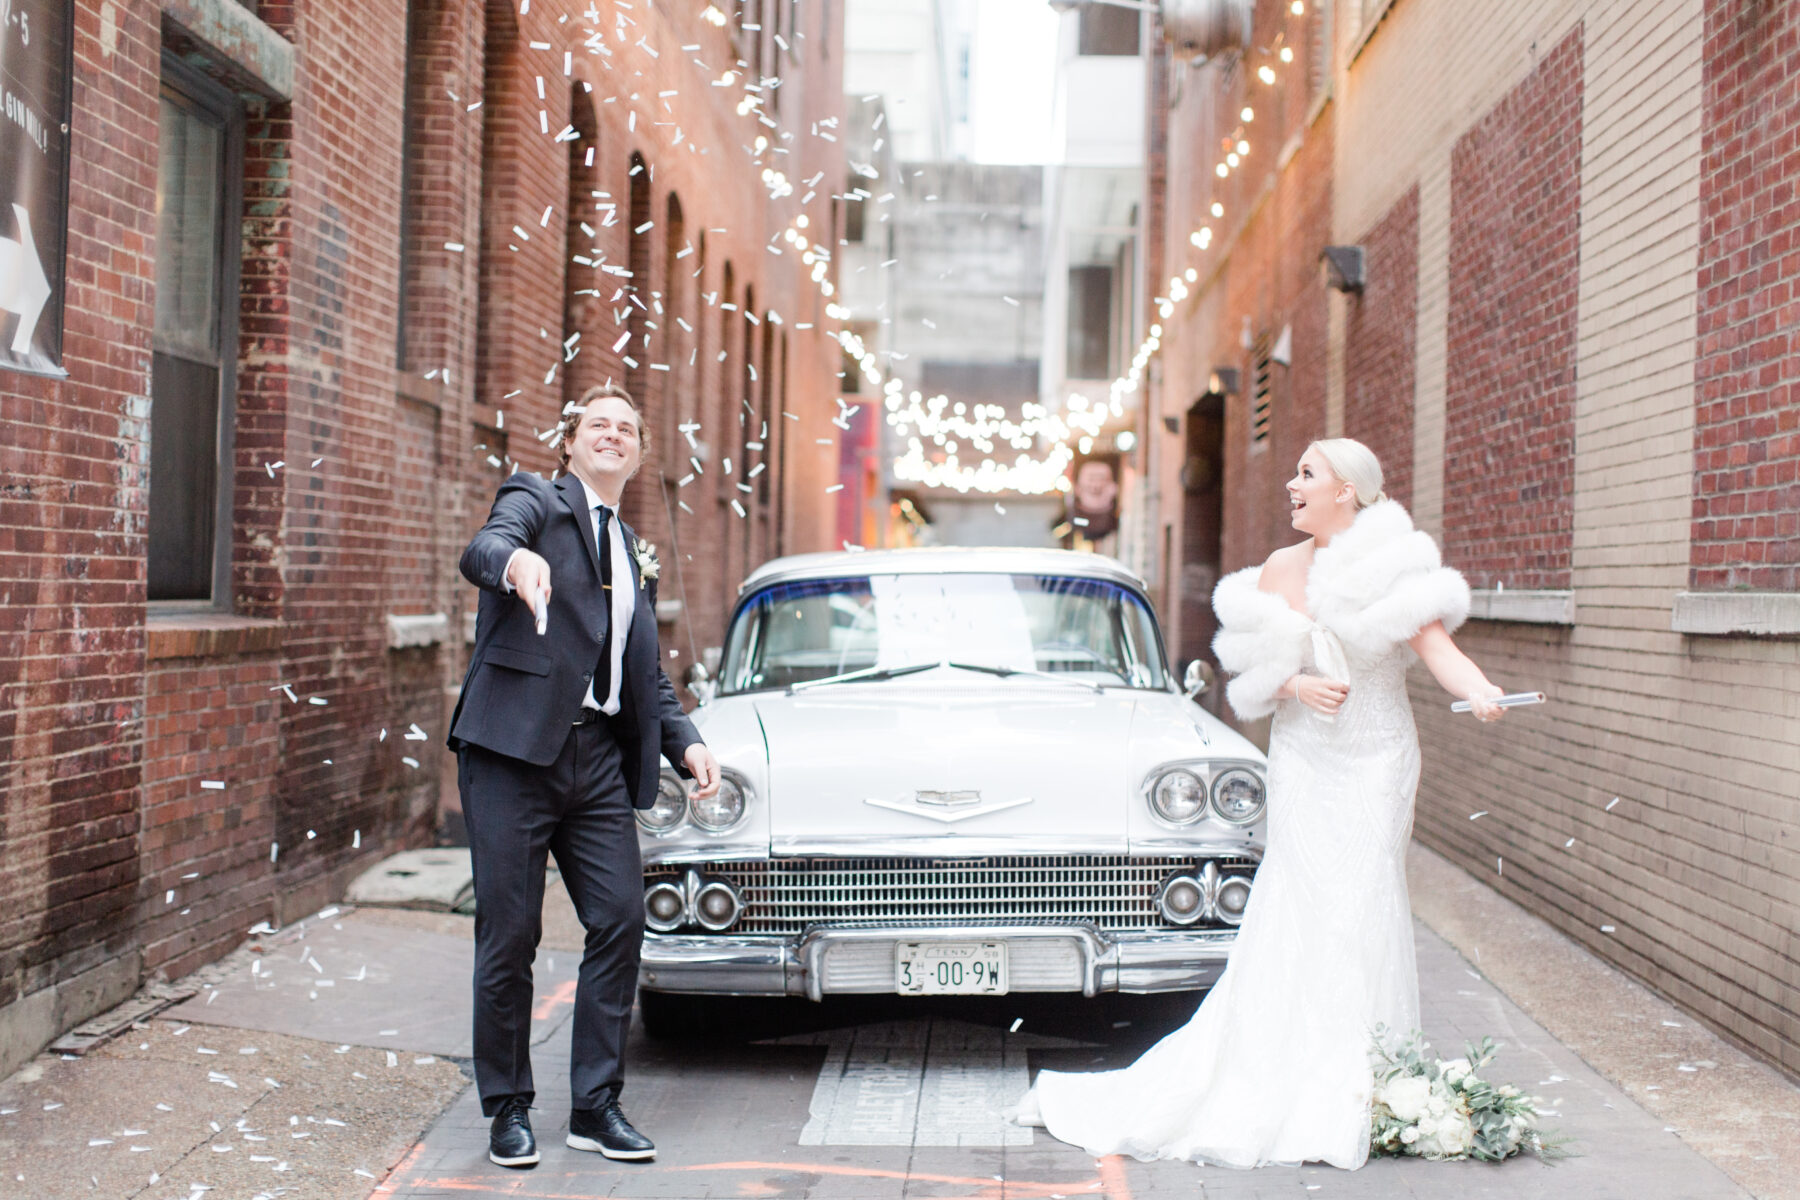 Confetti wedding photos: Classic, Yet Modern New Years Eve Wedding Inspiration featured on Nashville Bride Guide